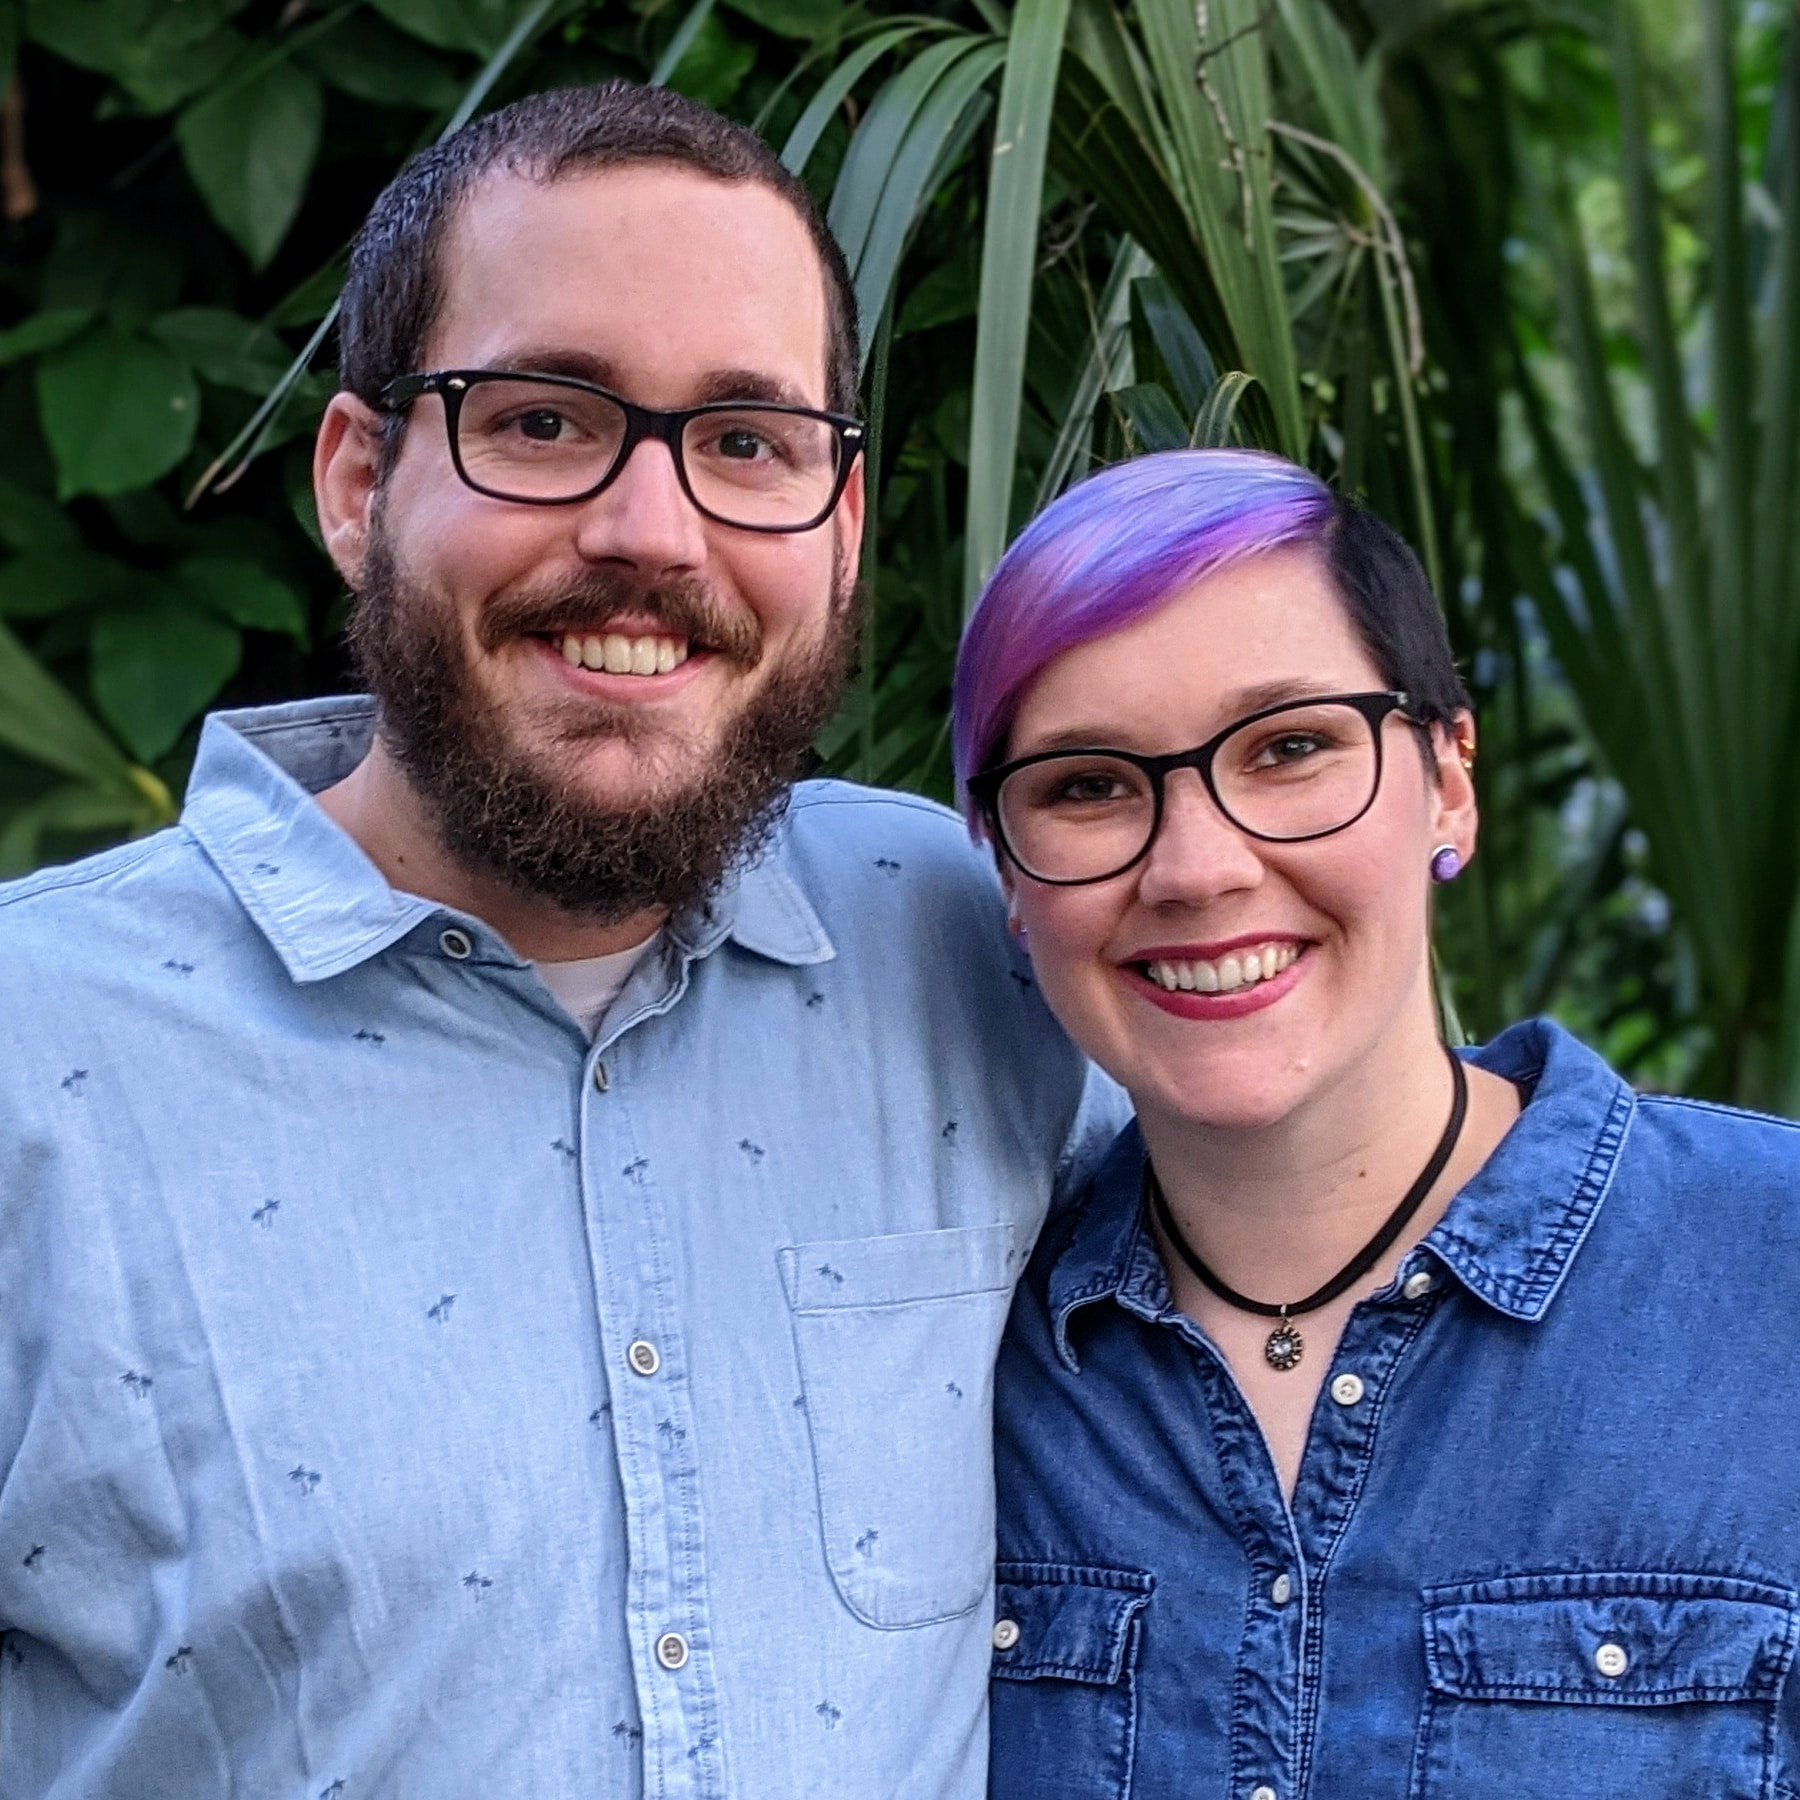 Michael and Taylor, co-founders of Rainbow Brains smiling in front of foliage